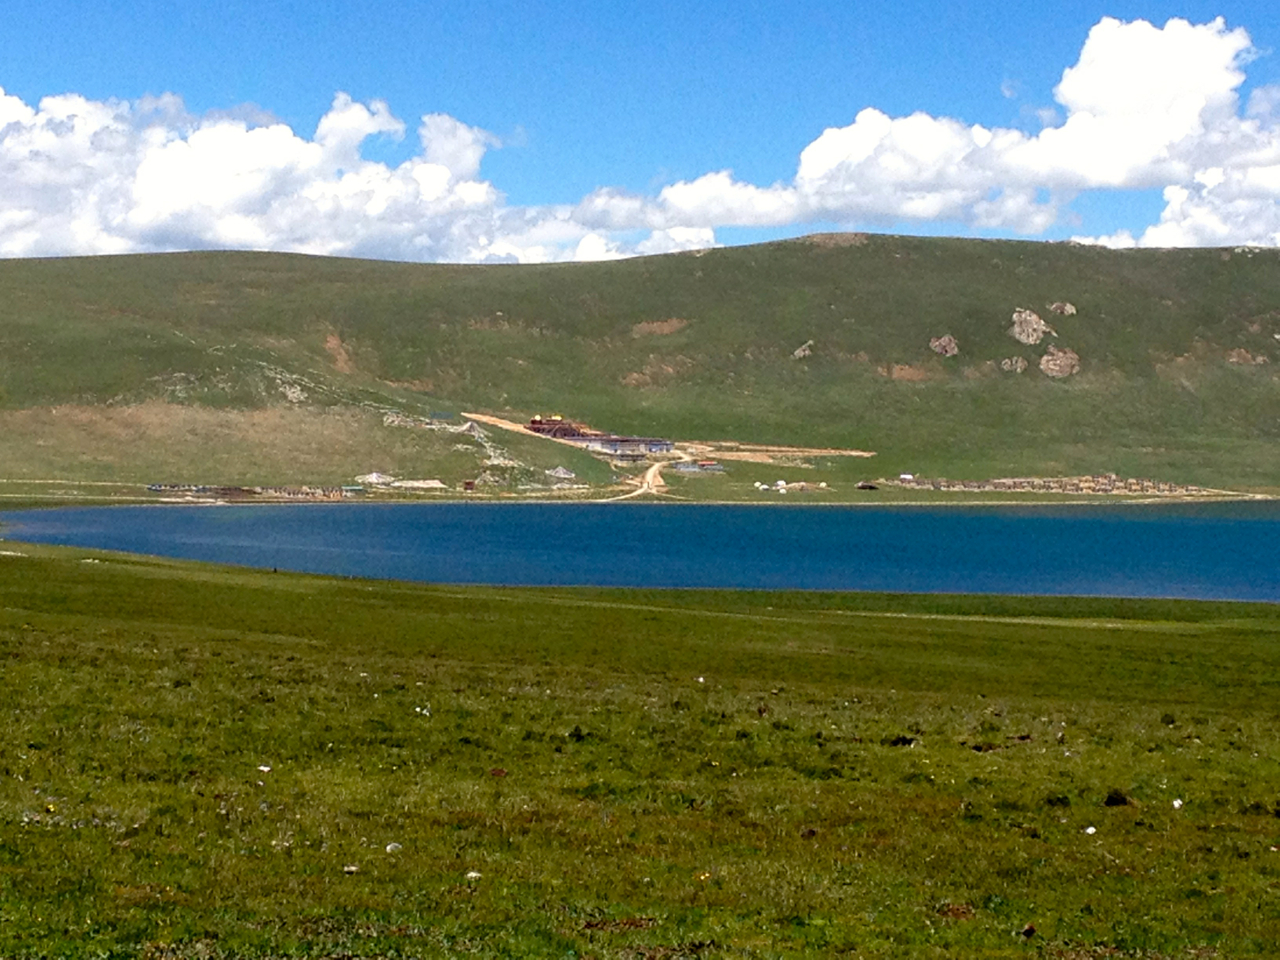 Ayang Gompa and Clinic across the Lake of Compassion, Eastern Tibet